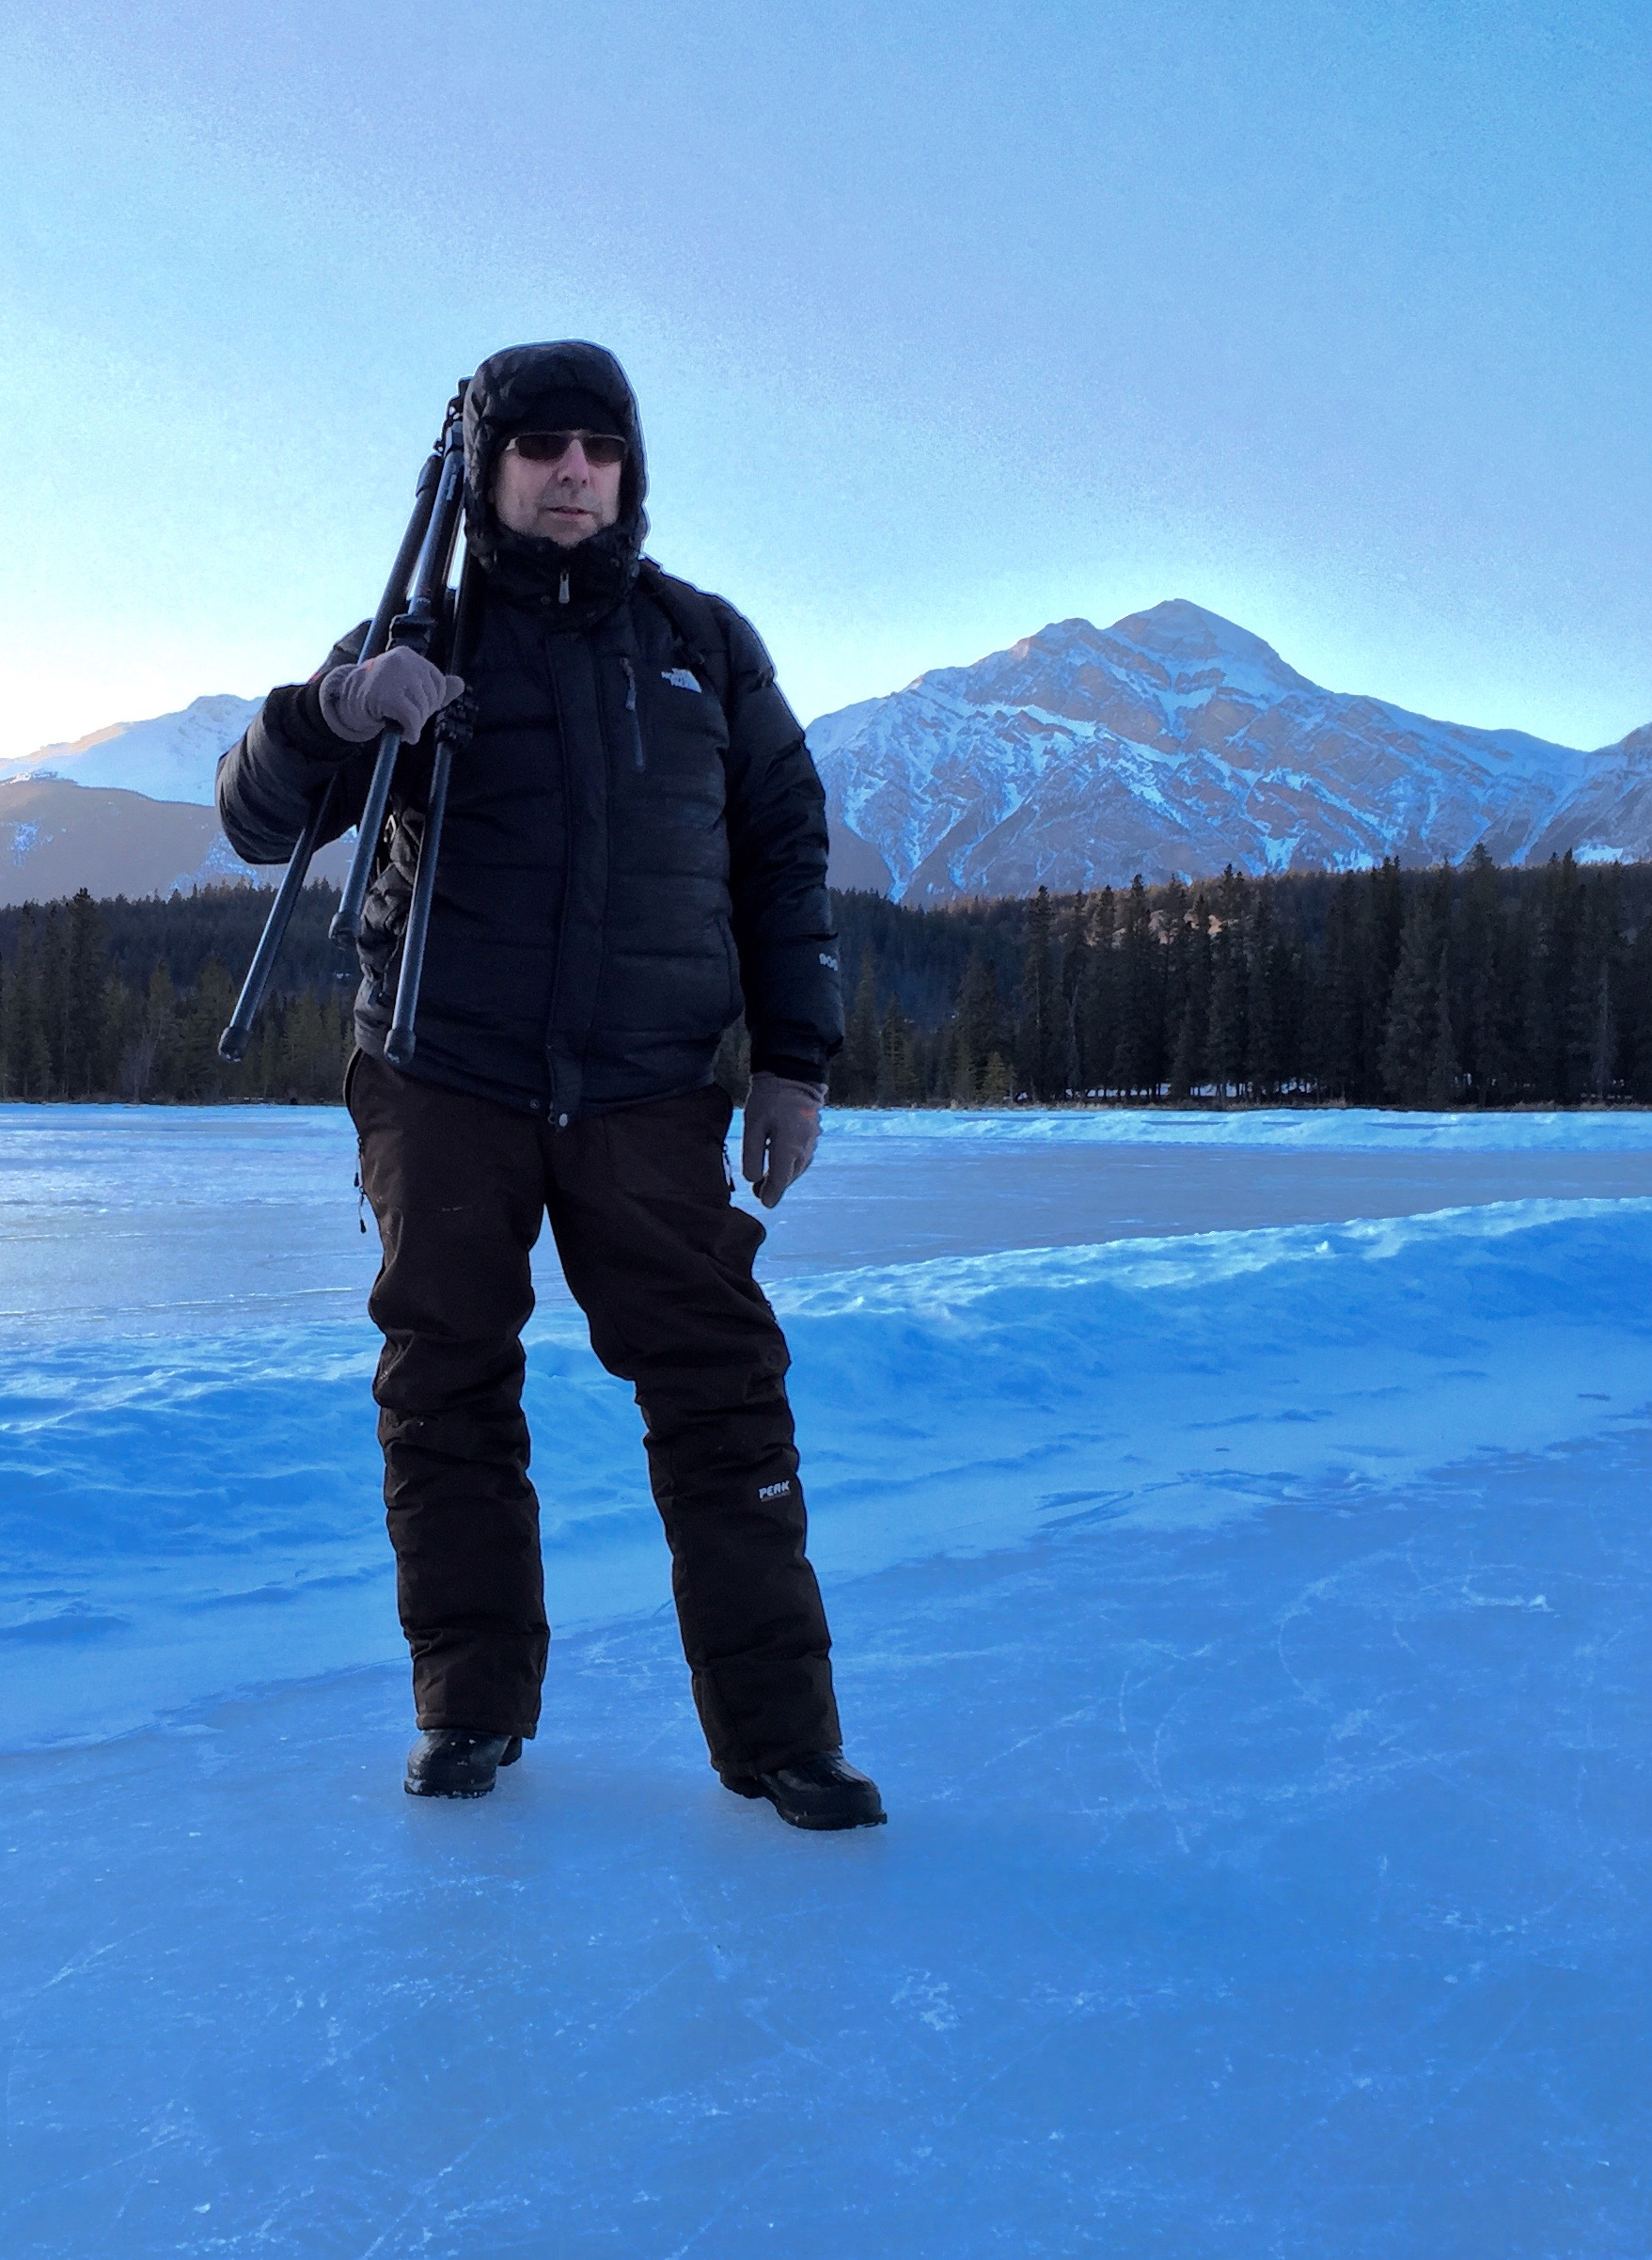 On location in Jasper National Park, Canada for Toolbox Design and Fairmont Hotel Group.